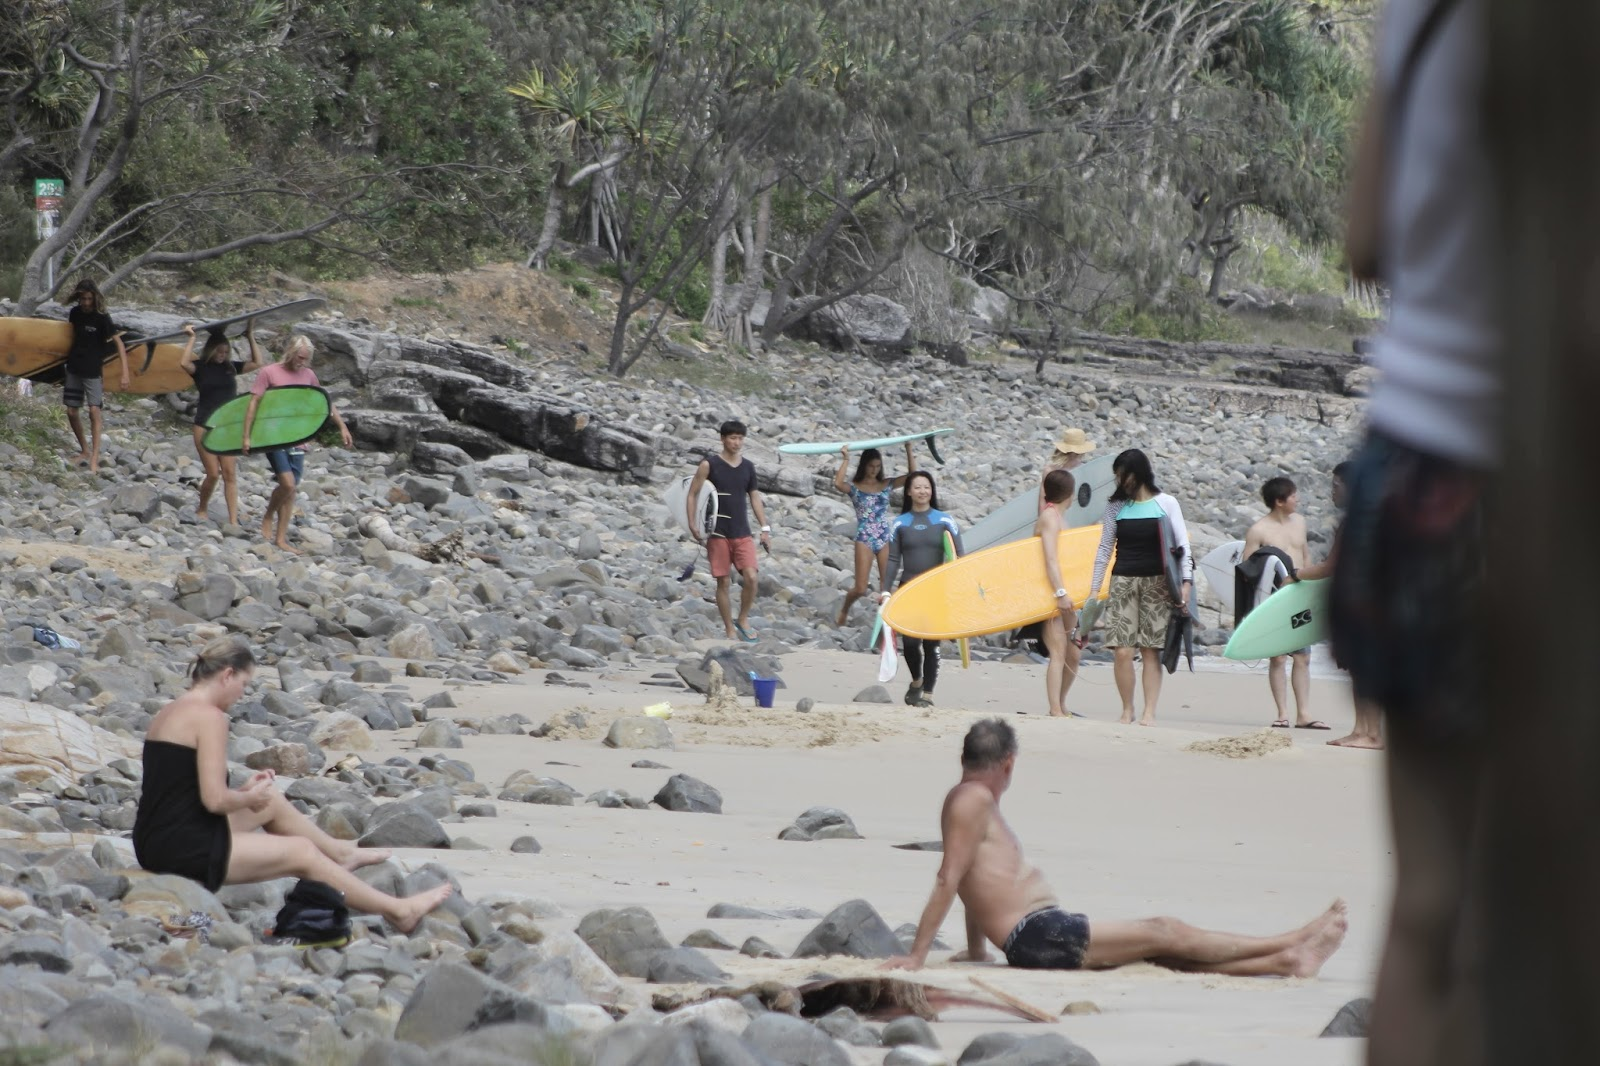 09-03-2016-australia-siebert-surfboards-14